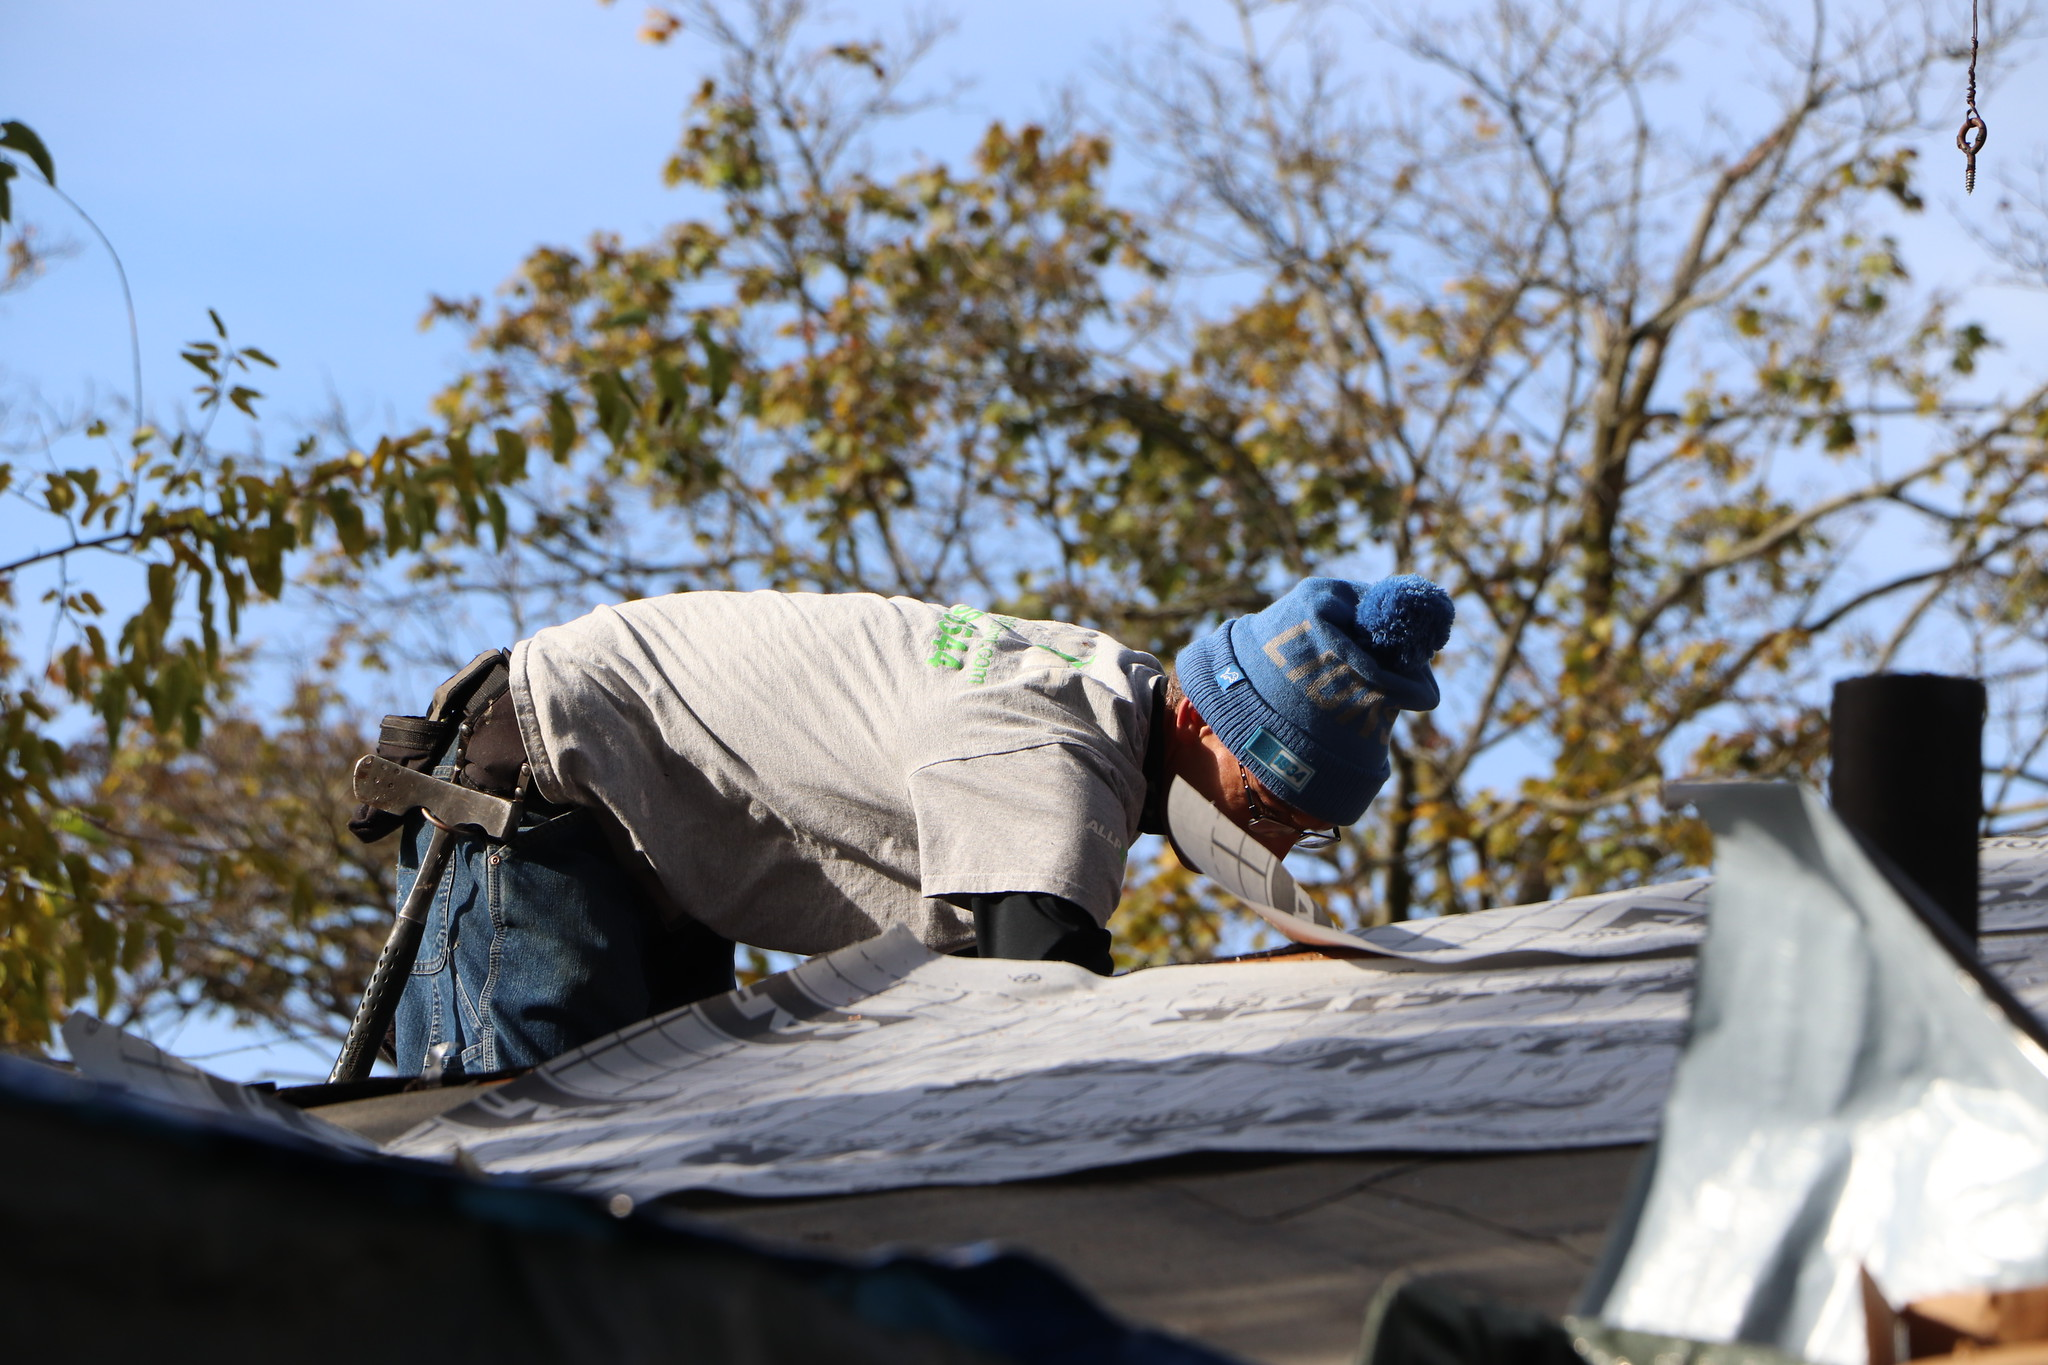 Hiring The Finest Service Provider to Deal with Your Roofing Problems